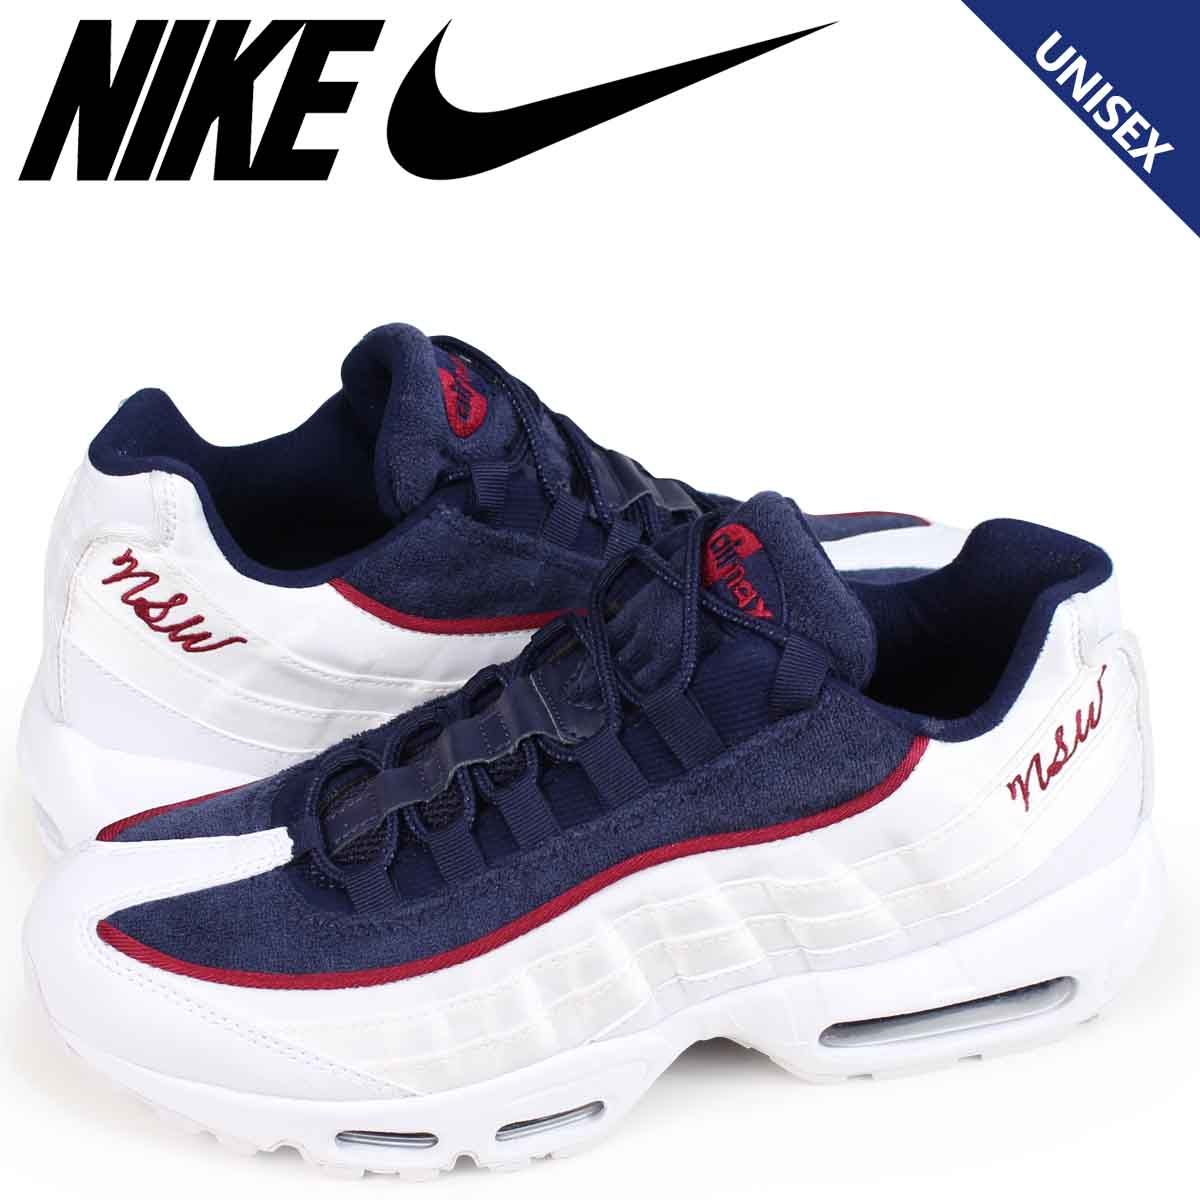 new concept 7d7ed 6349b Nike NIKE Air Max 95 sneakers Lady's men WMNS AIR MAX 95 LX AA1103-100 white